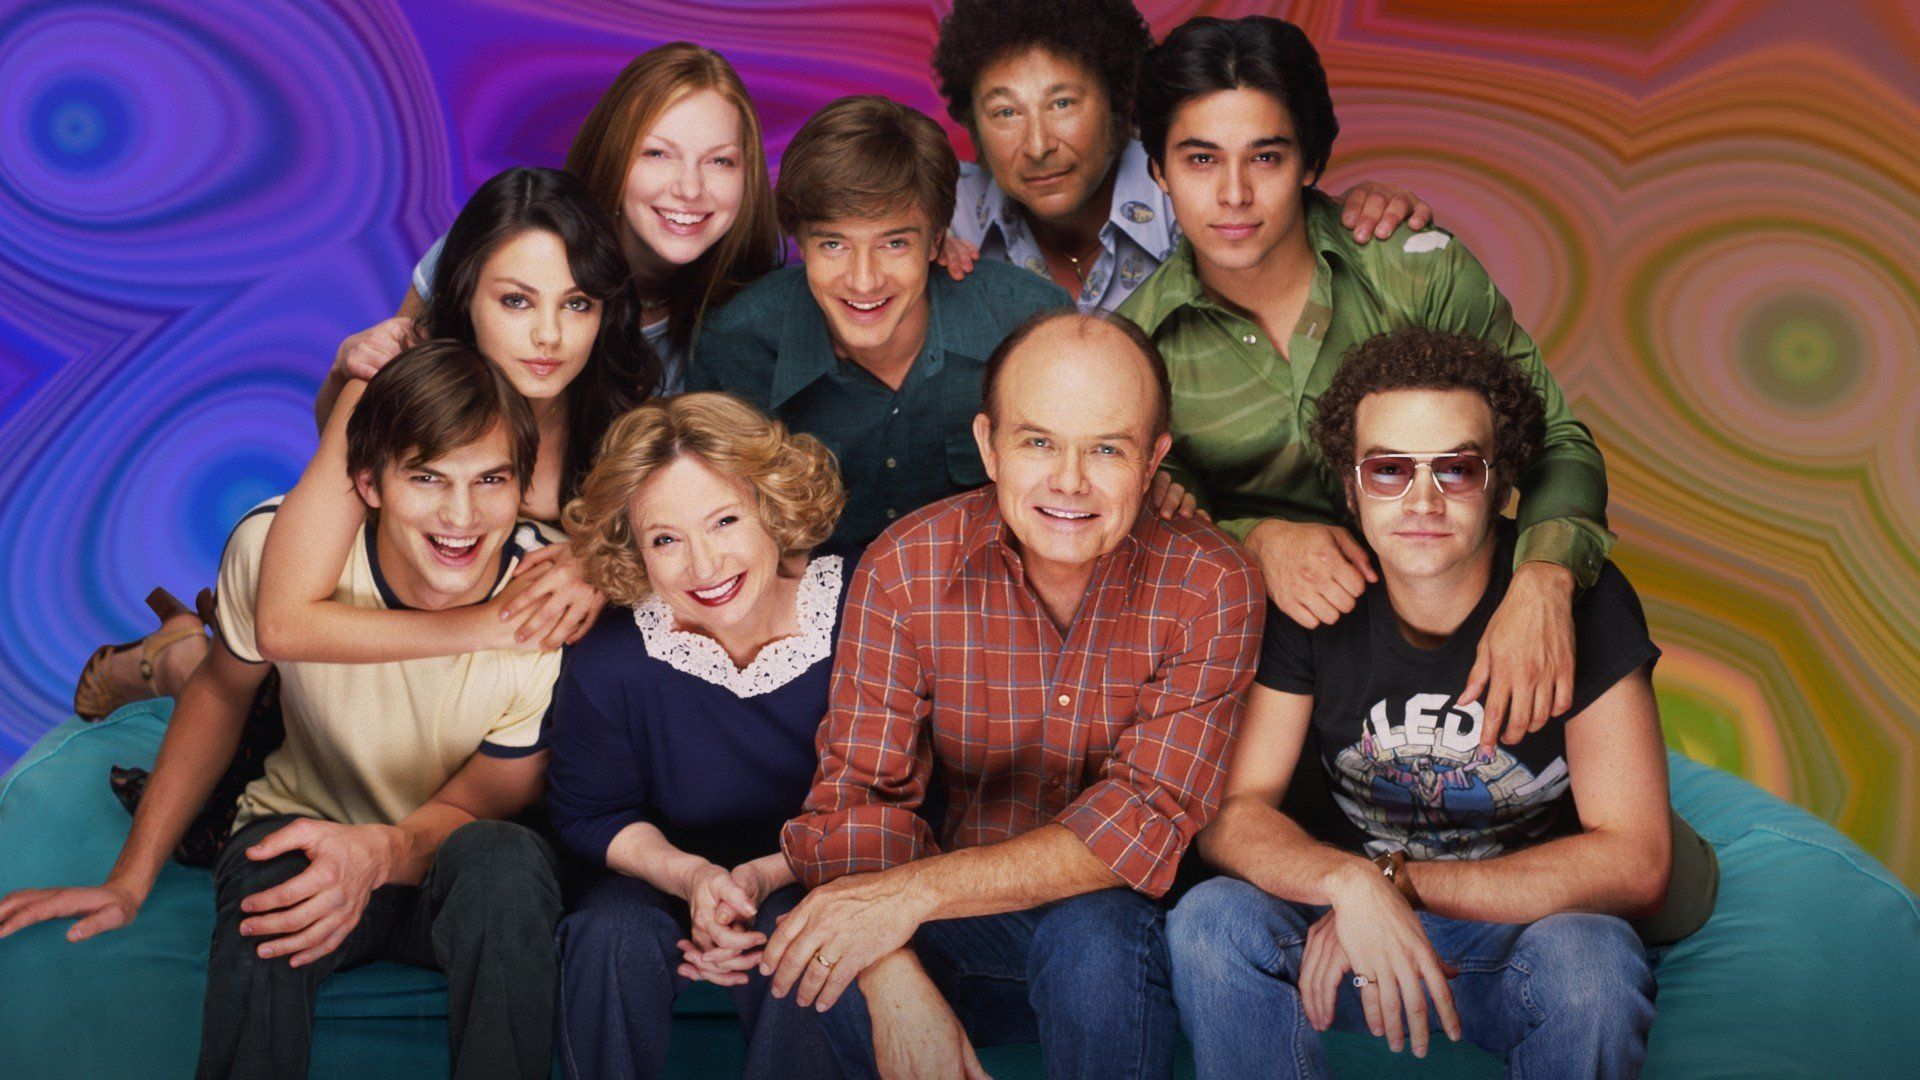 10 Things You Didn't Know About That '70s Show